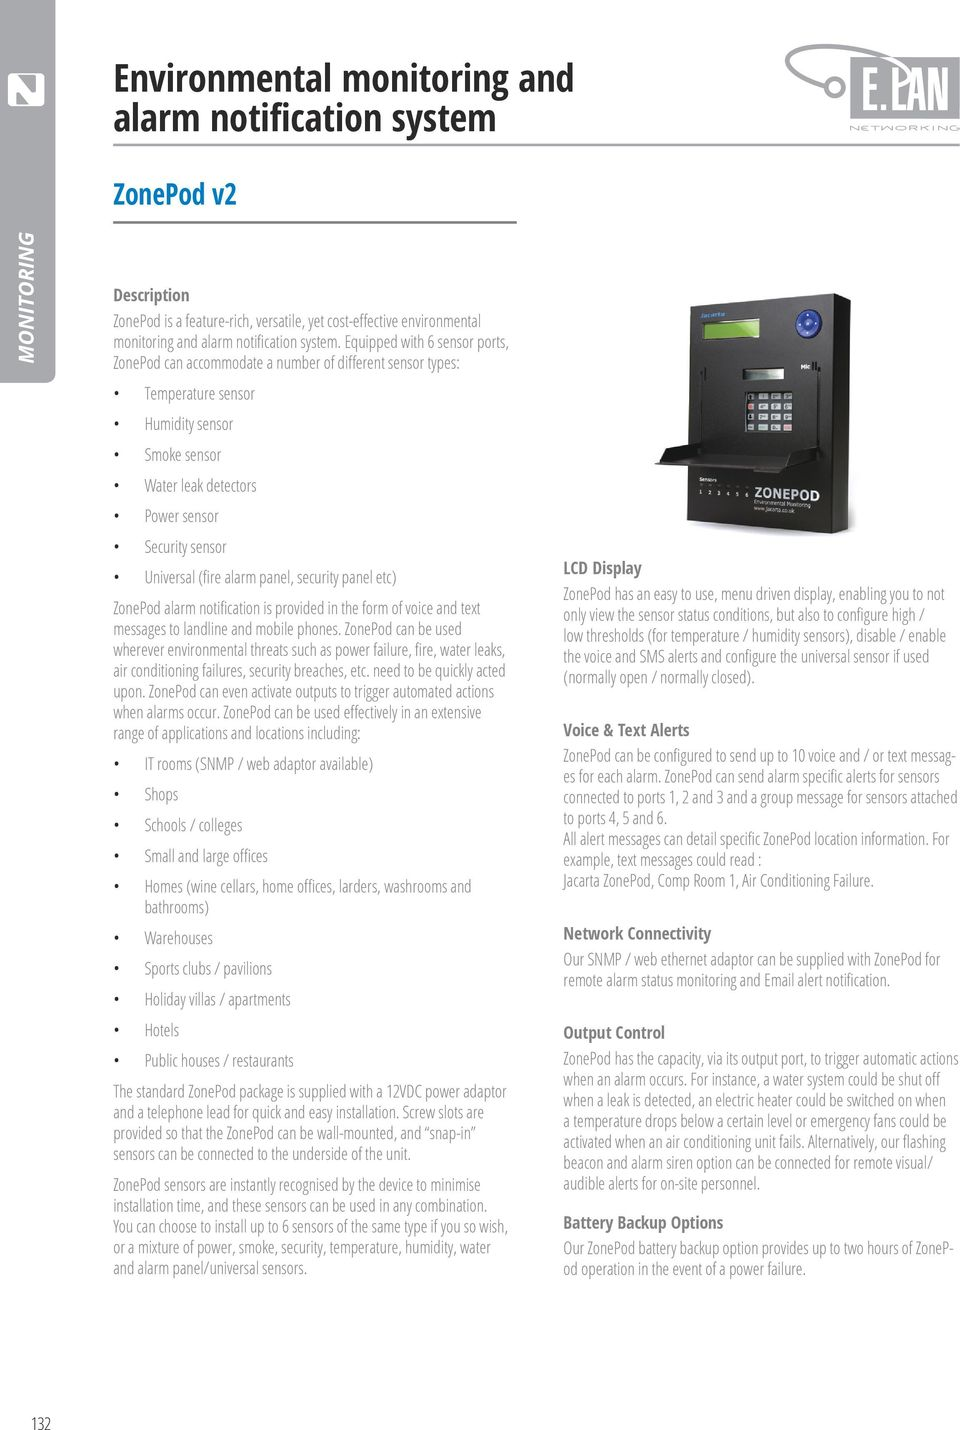 (fire alarm panel, security panel etc) ZonePod alarm notification is provided in the form of voice and text messages to landline and mobile phones.